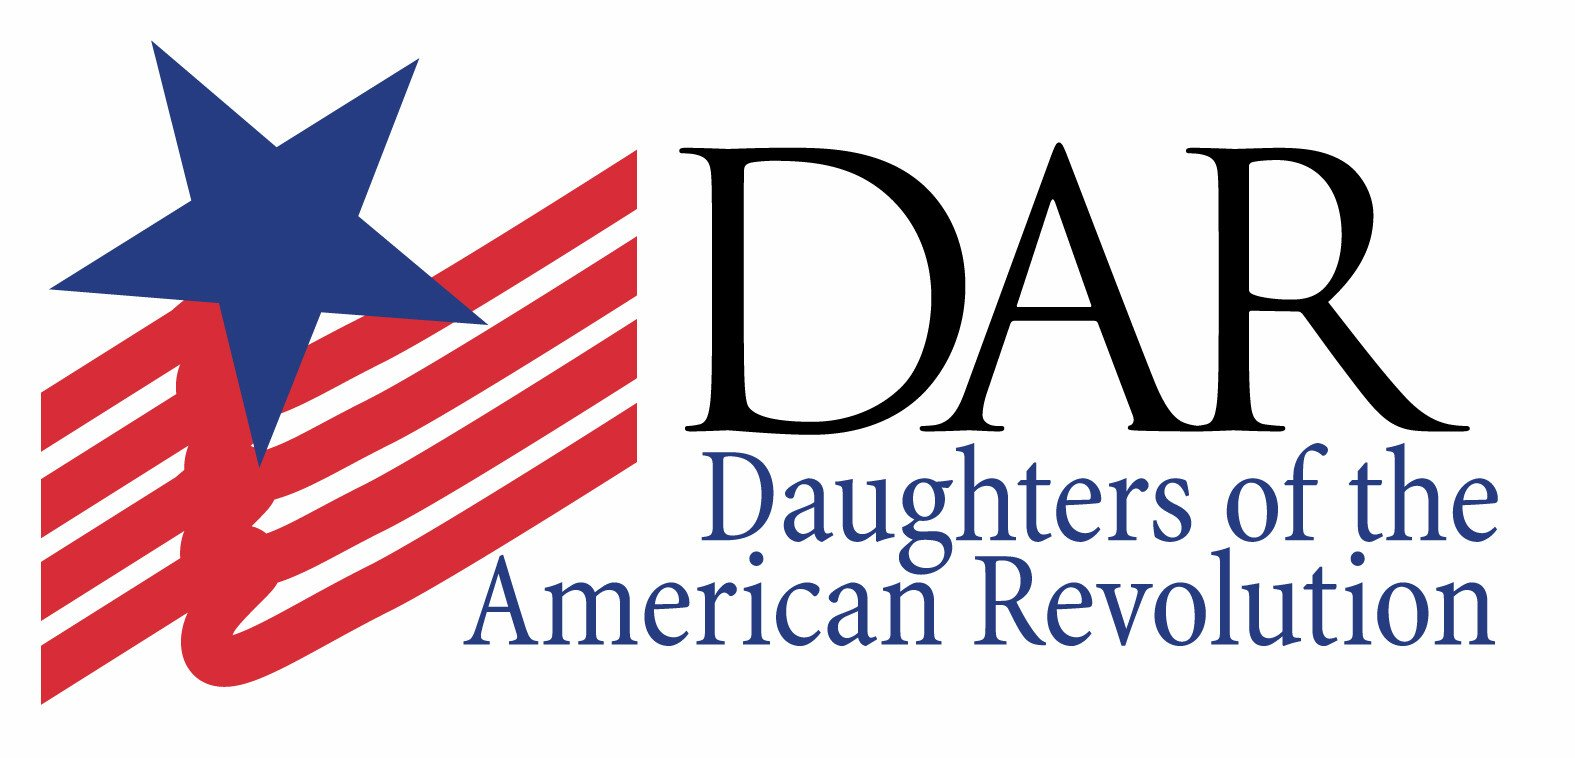 The Daughters of the American Revolution logo.